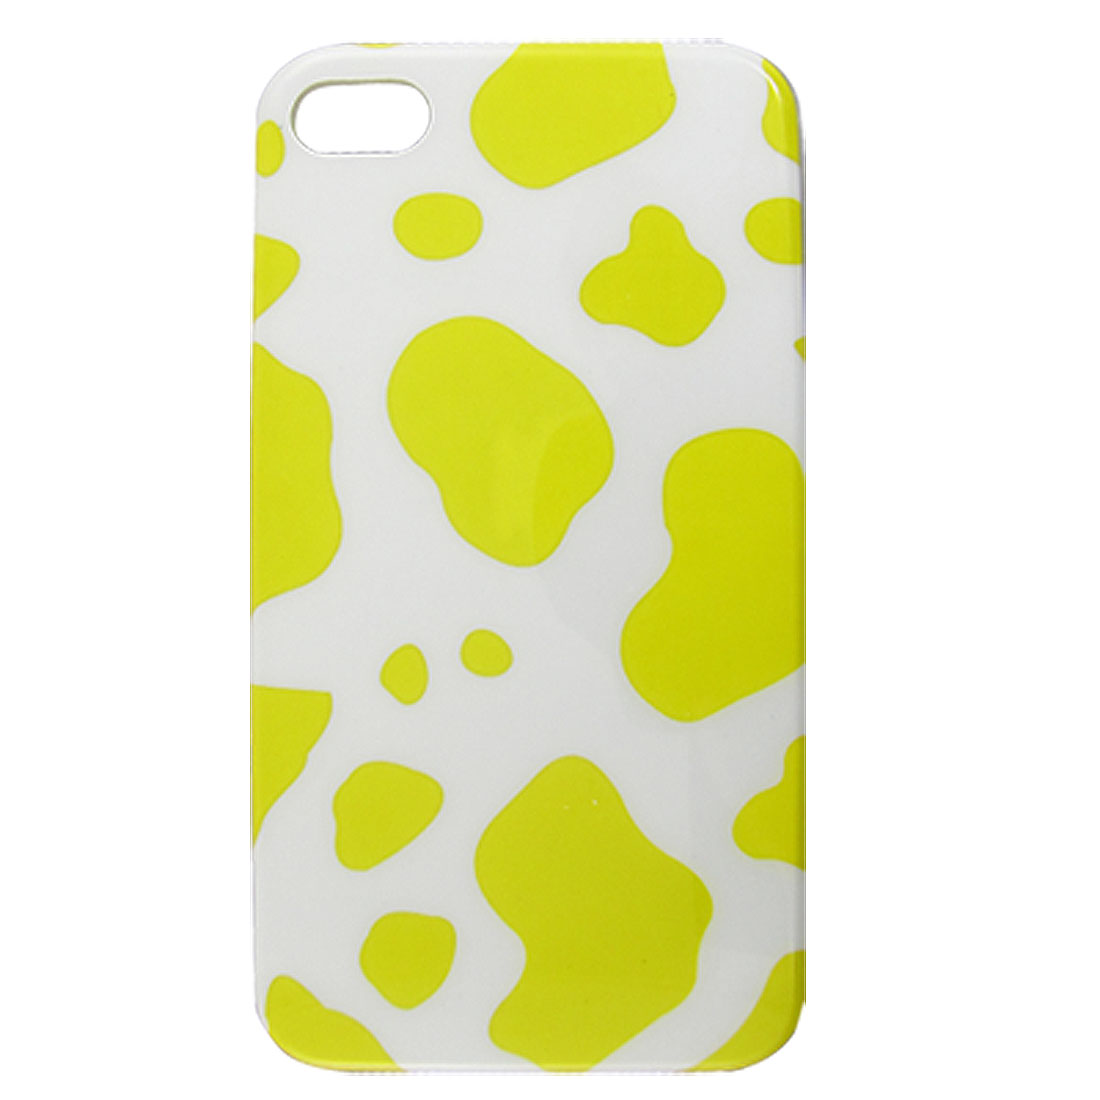 Hard Plastic Yellow White IMD Giraffe Print Cover for iPhone 4 4G 4S